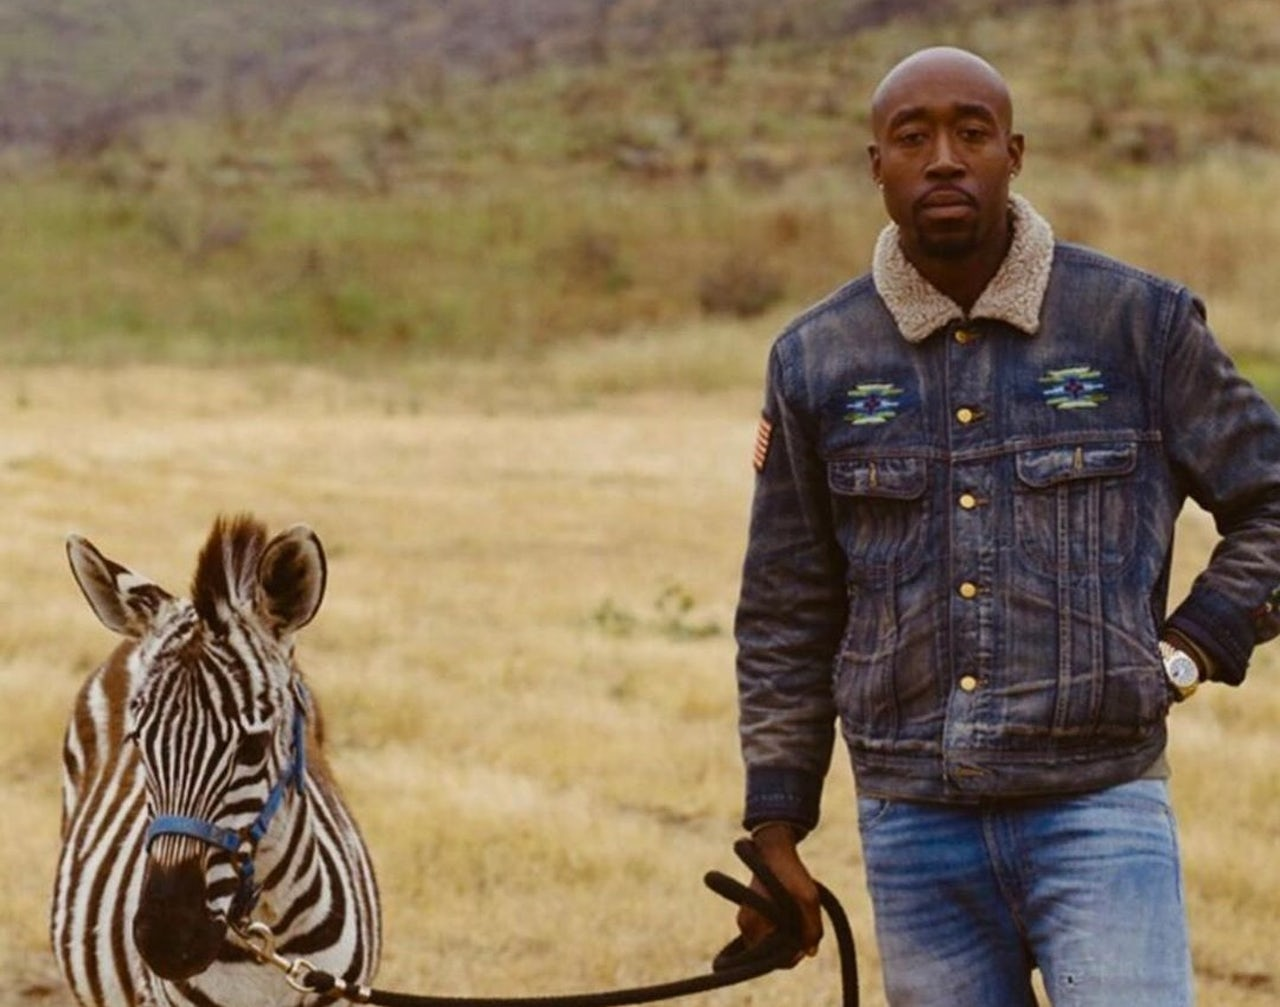 Freddie Gibbs makes magic with Madlib's rejected Kanye beats